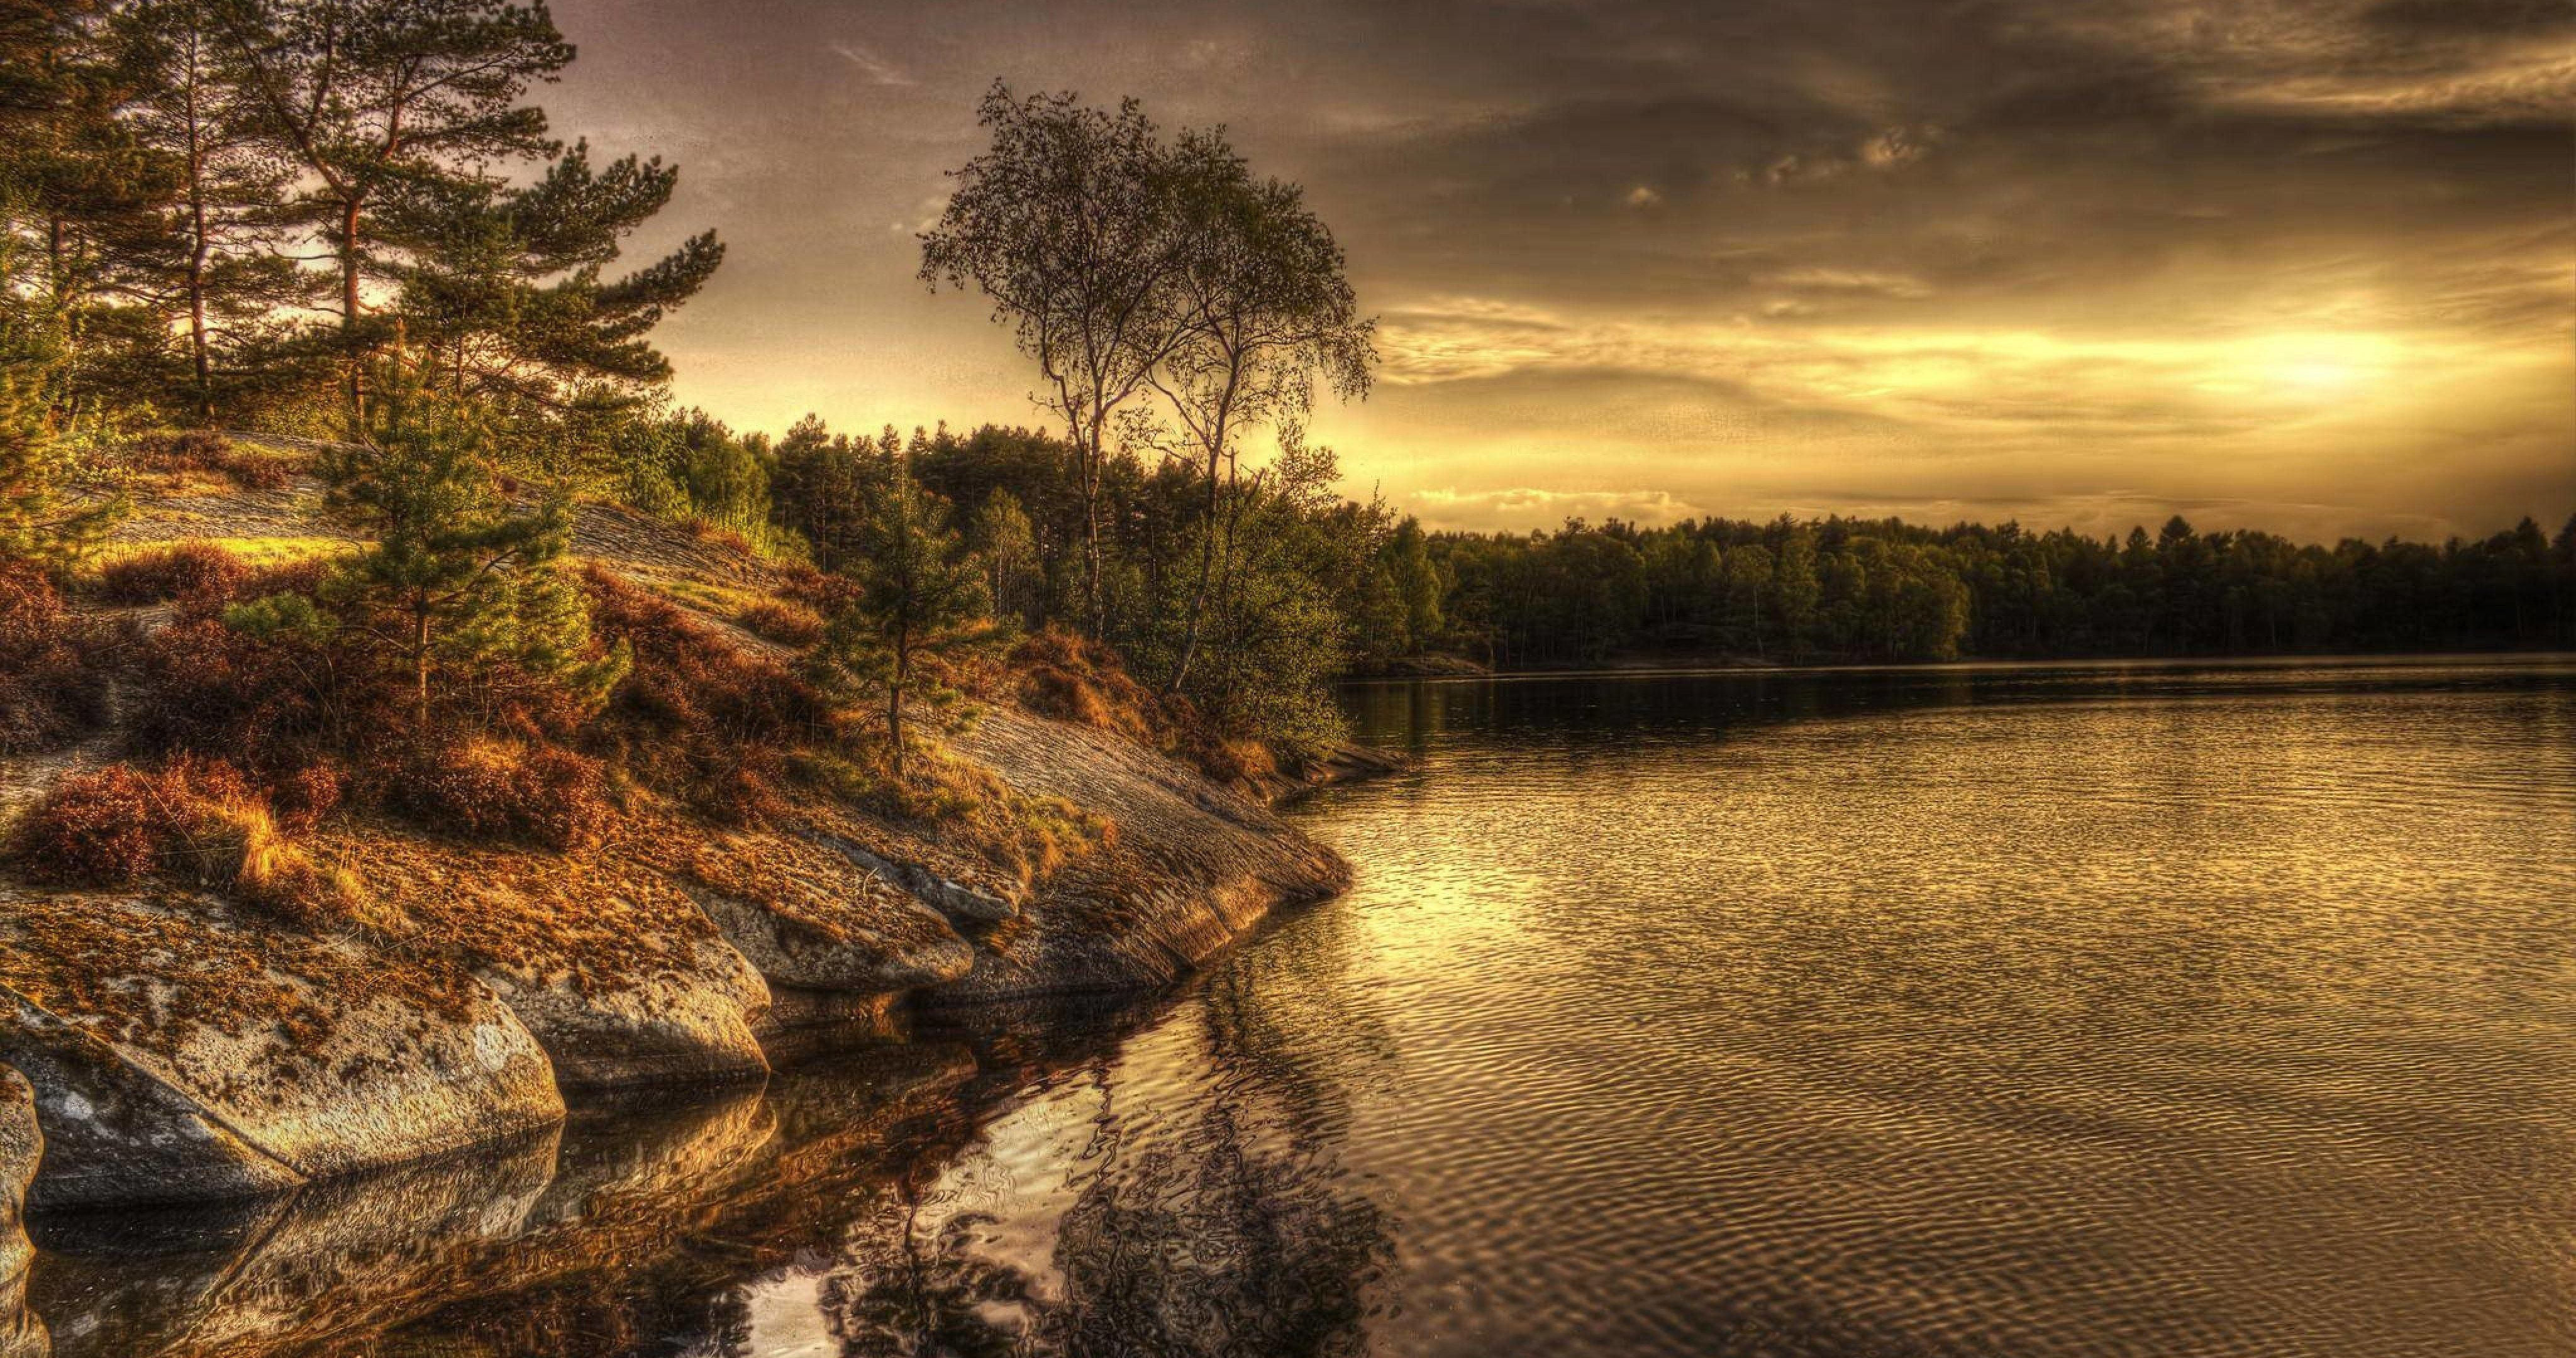 4k Ultra Hd Wallpapers Download 108087 Hdr Photography Hd Wallpaper Landscape